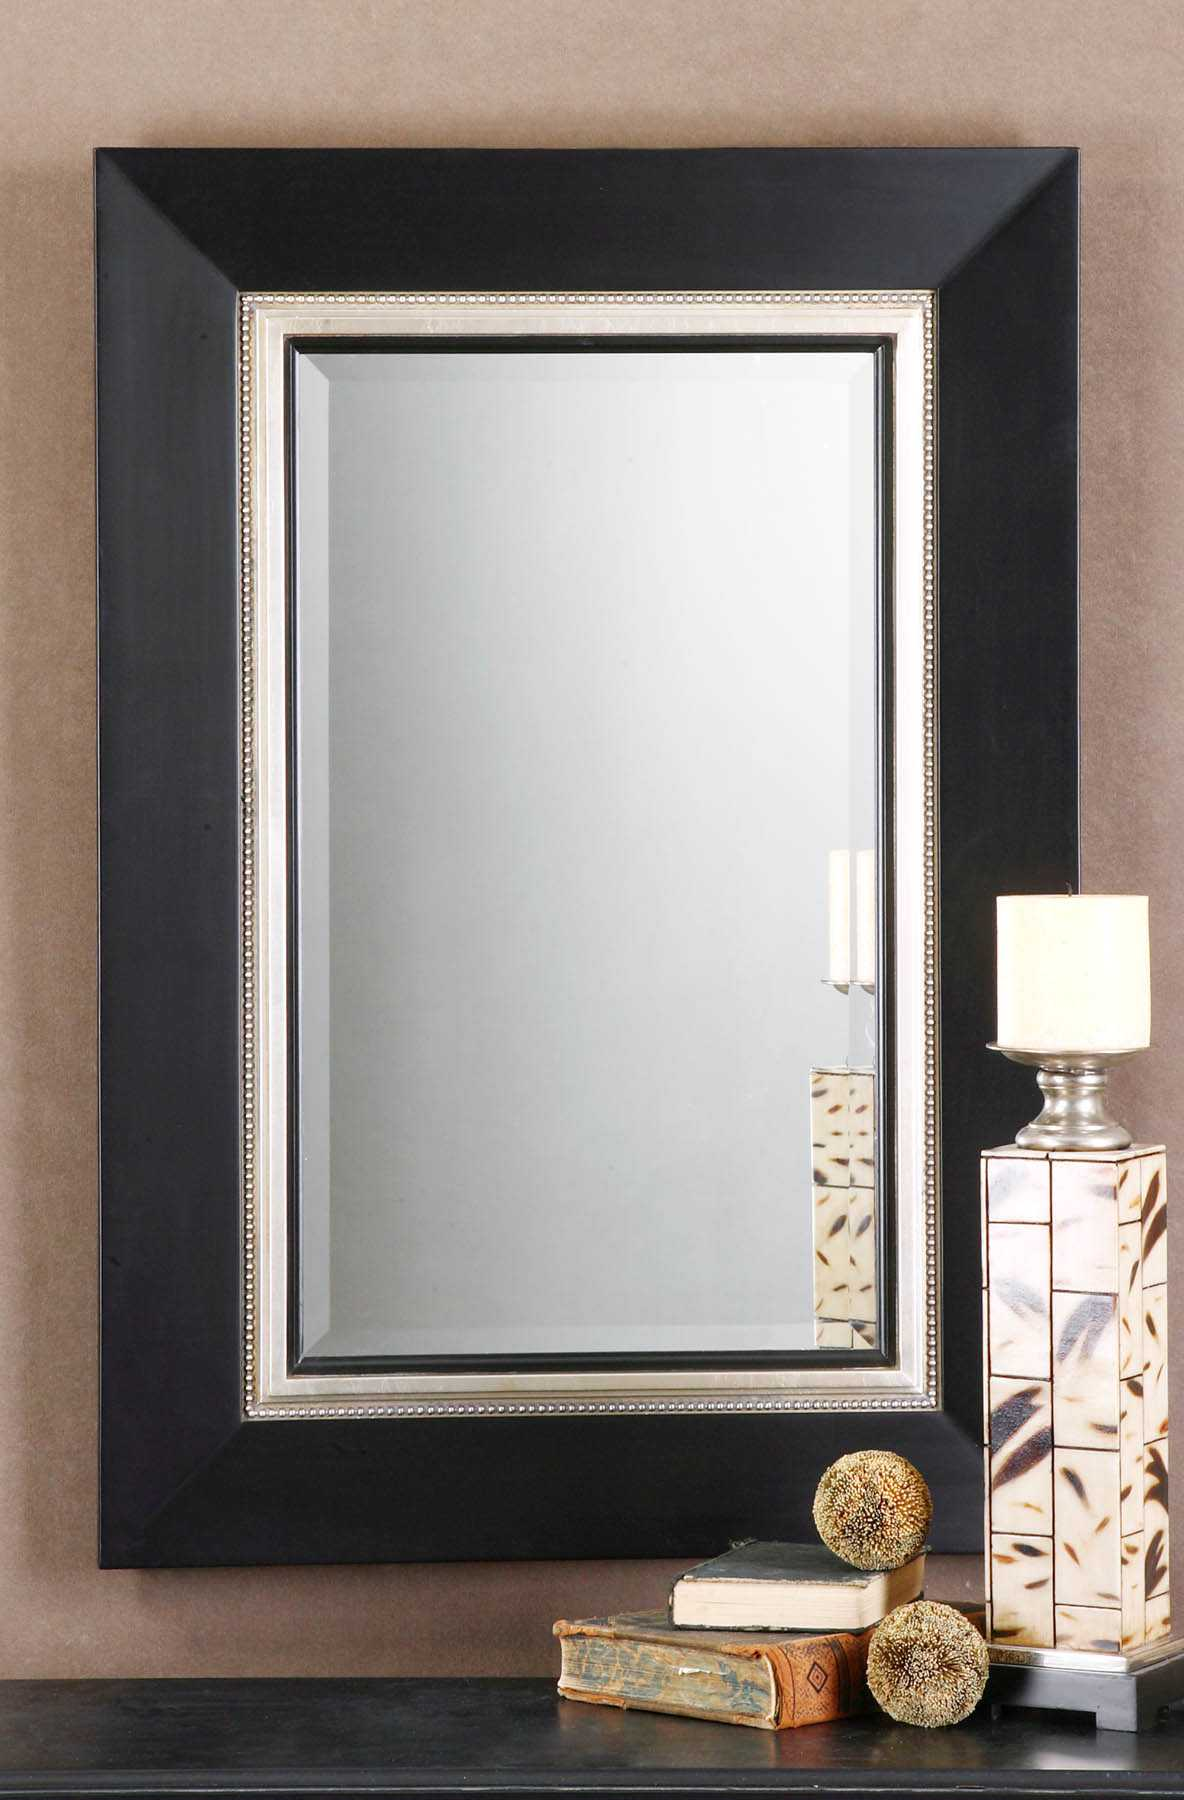 Uttermost Whitmore 30 X 40 Black Vanity Wall Mirror Ut14153b